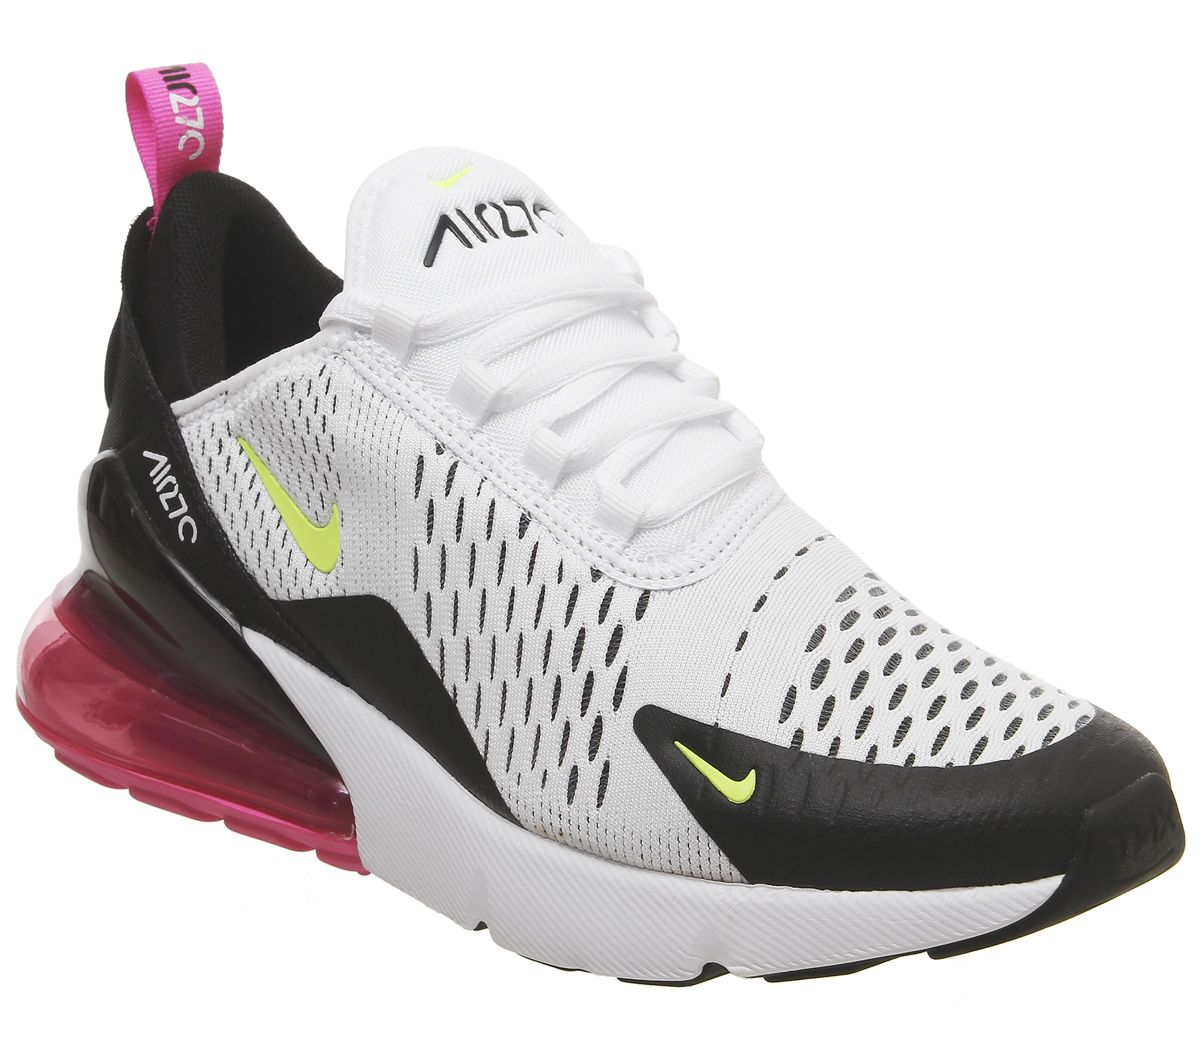 best service 104fe c7163 Nike Air Max 270 Gs Trainers White Volt Black Laser Fuchsia ...